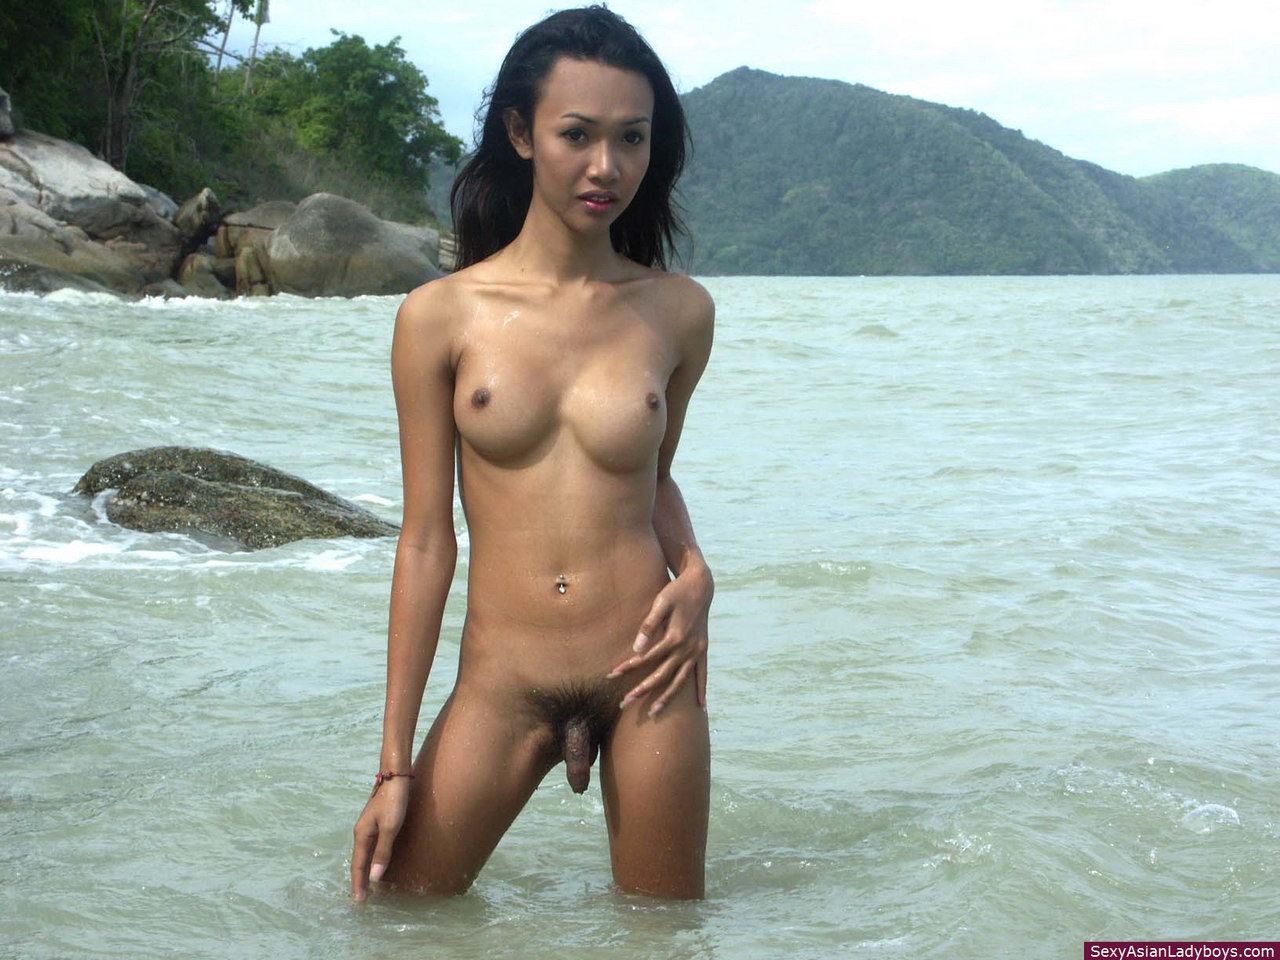 Nude beach girl plays with penis